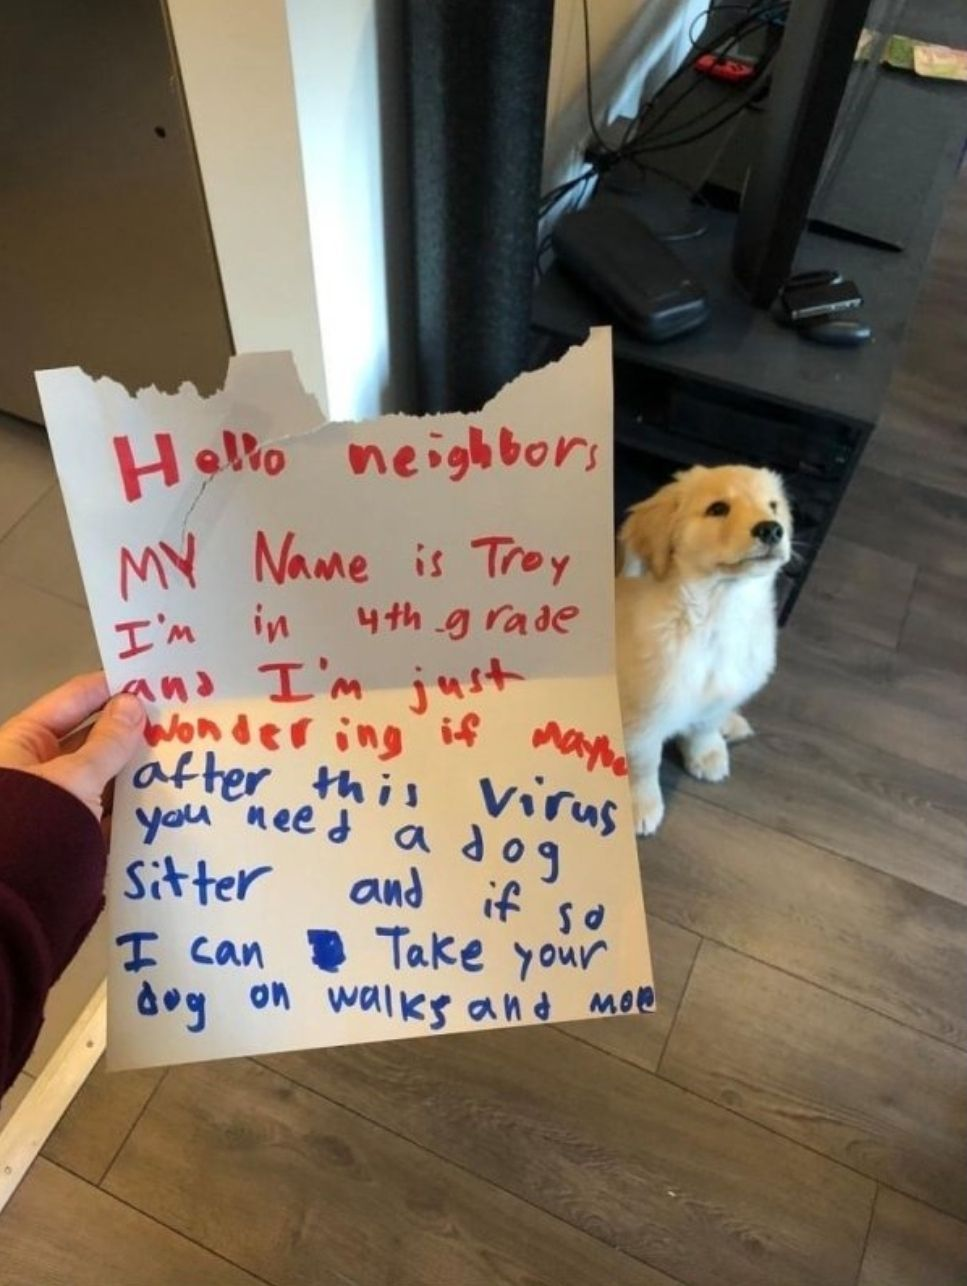 At first I thought the dog wrote the note and his name was Troy and he was a smug-looking new neighbor who was somehow in fourth grade too and who had just walked right into this person's house lol